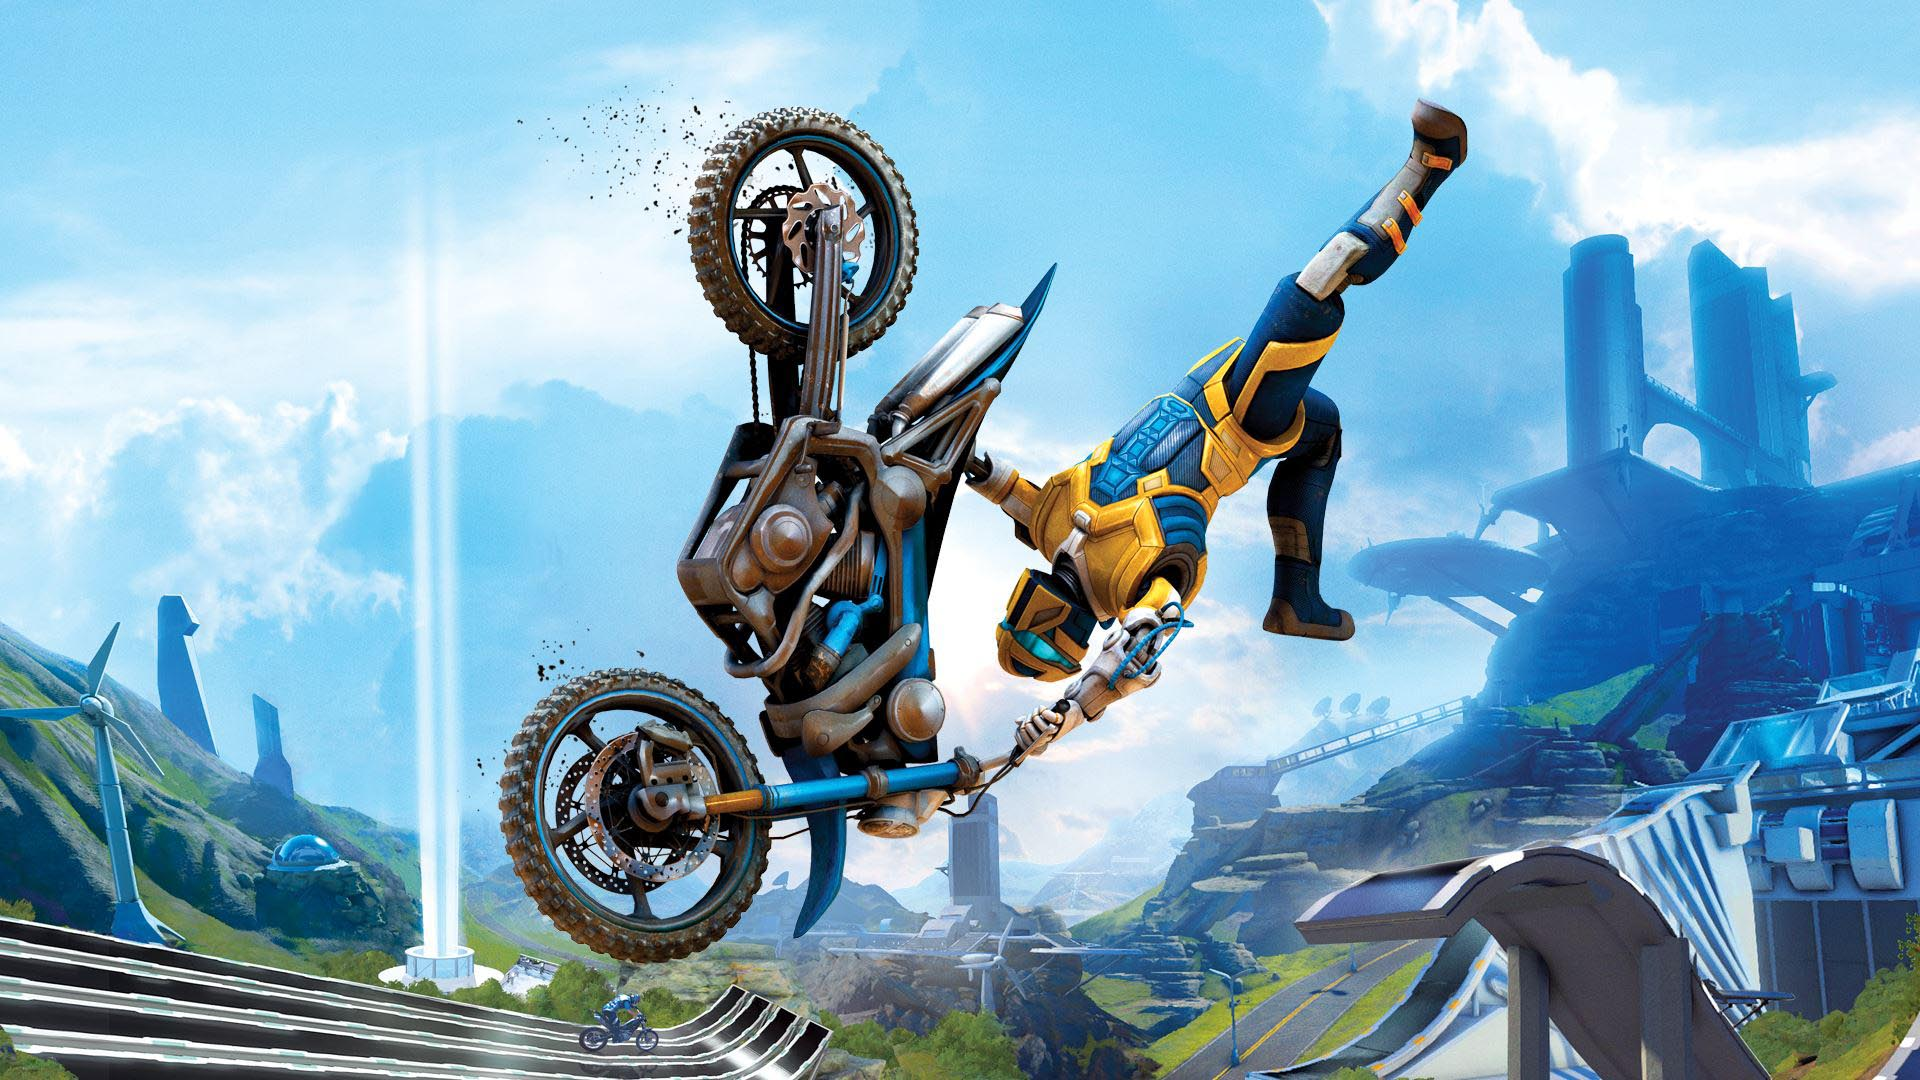 Okay, so there's a finish line here. But the focus in <i>Trials Fusion</i> isn't getting there first, it's pulling stunts along the way and getting there in style. For current-gen gamers, this is a no-brainer, as it's one of the few games which support four-player local multiplayer. Oh, did we mention the unicorn DLC? Yep, that's a thing. | <b>For:</b> PC, PS4, Xbox One, Xbox 360